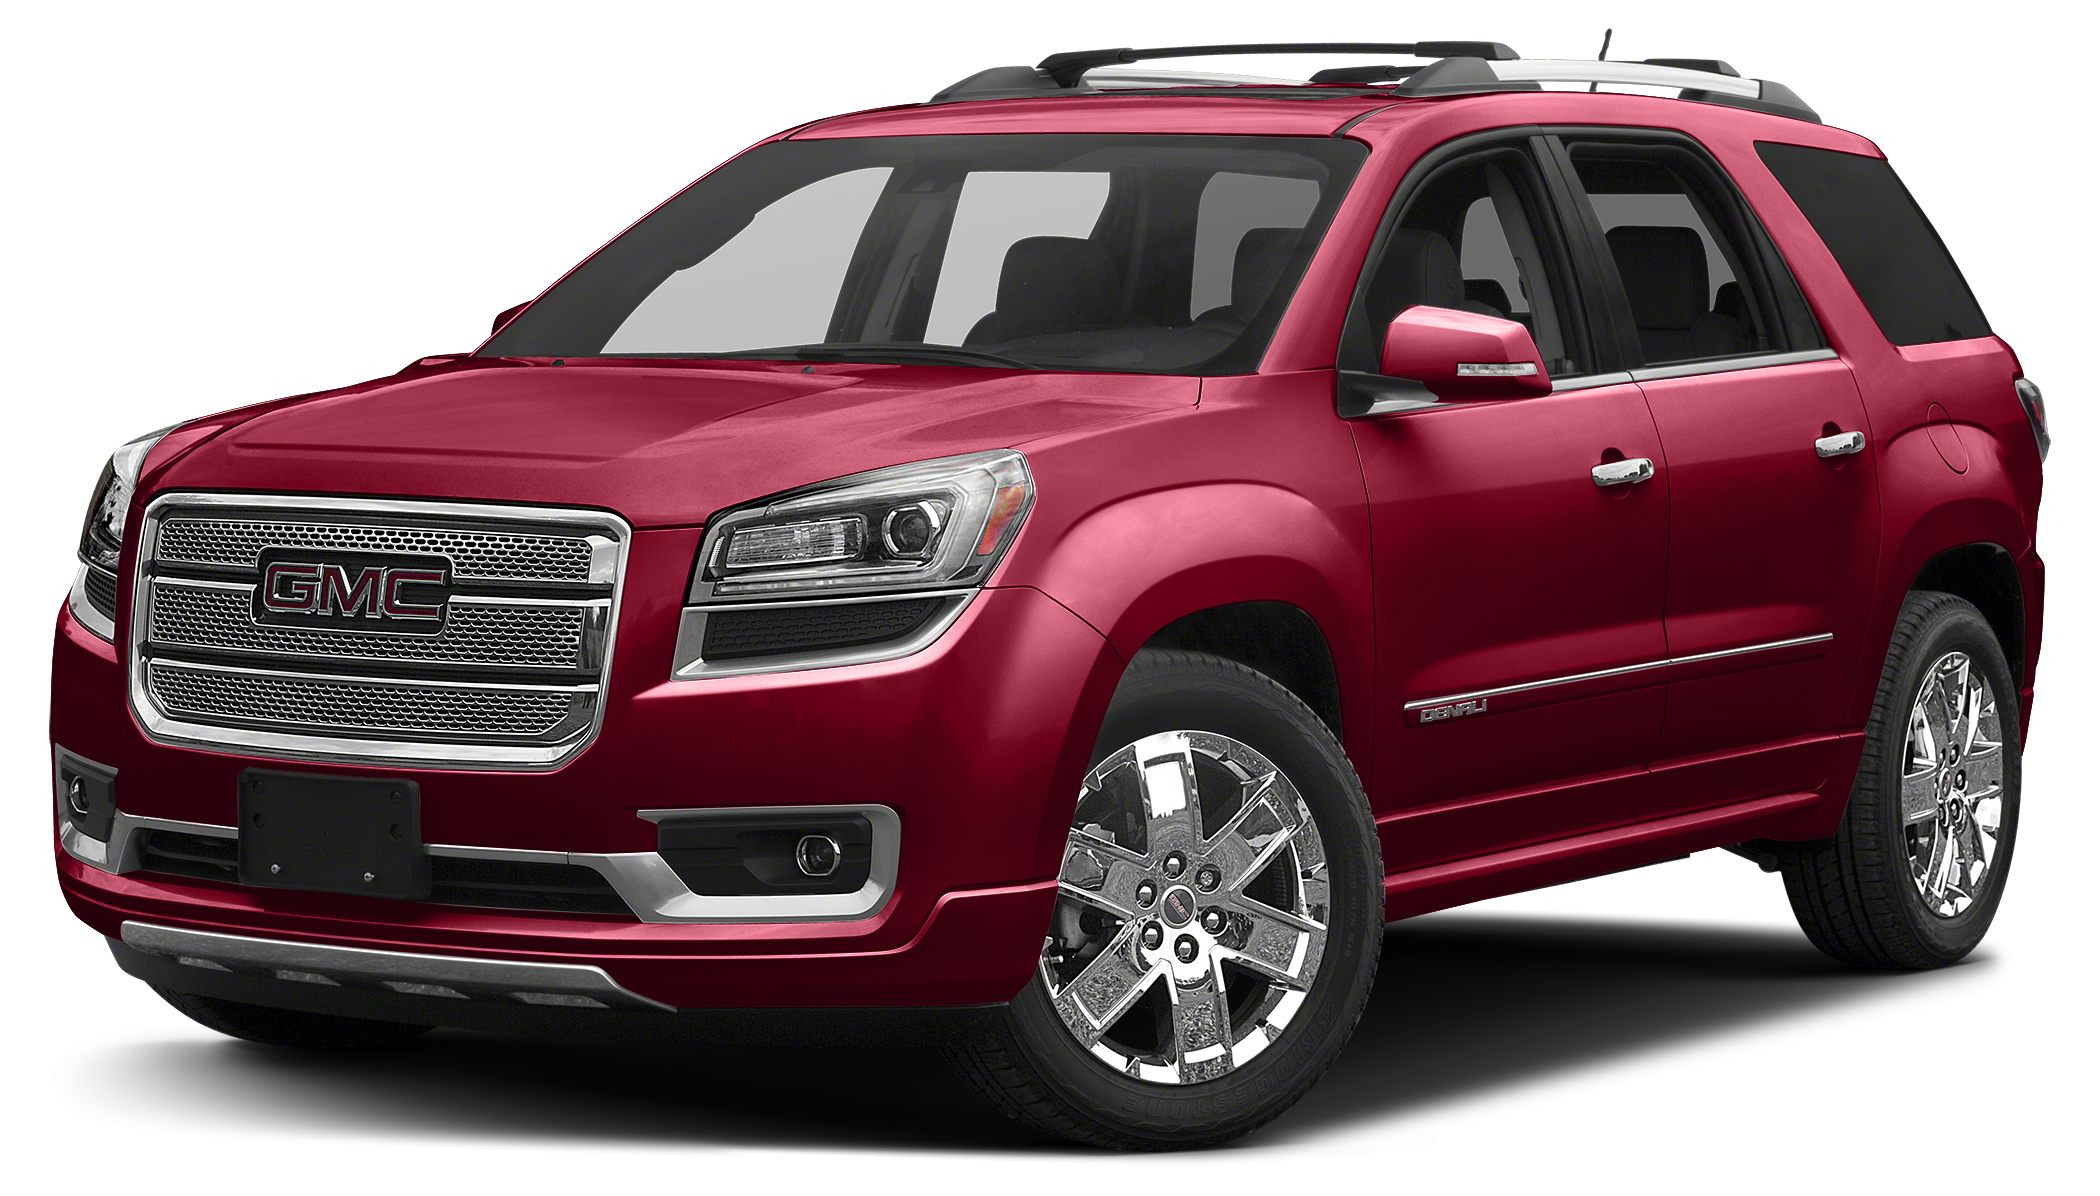 2015 gmc acadia denali cars and vehicles daytona beach fl. Black Bedroom Furniture Sets. Home Design Ideas